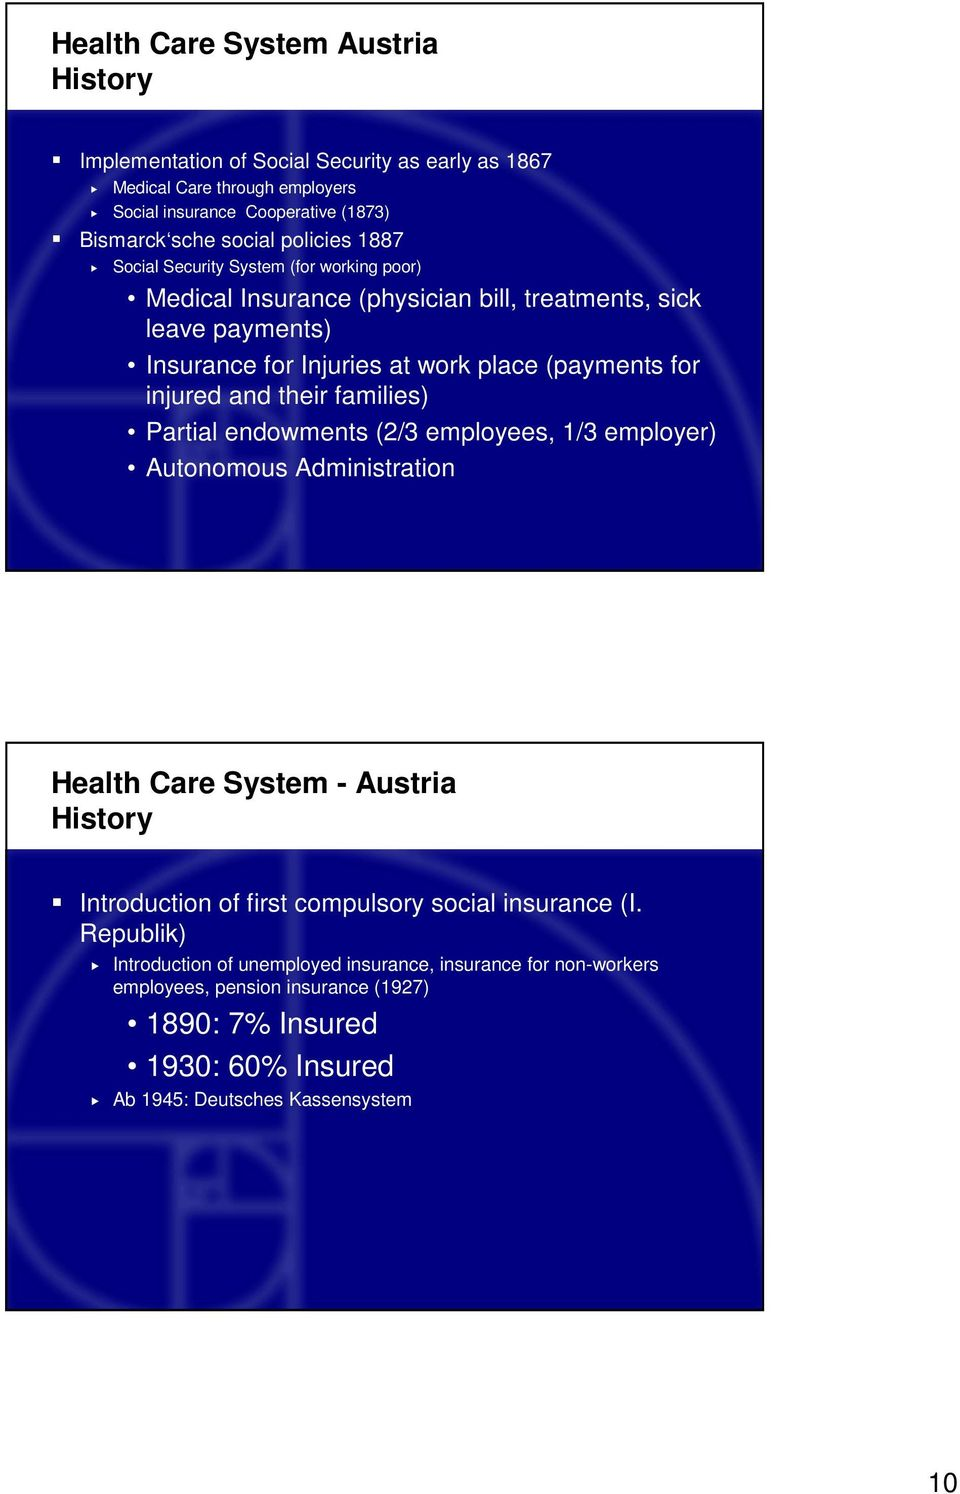 injured and their families) Partial endowments (2/3 employees, 1/3 employer) Autonomous Administration Health Care System - Austria History Introduction of first compulsory social